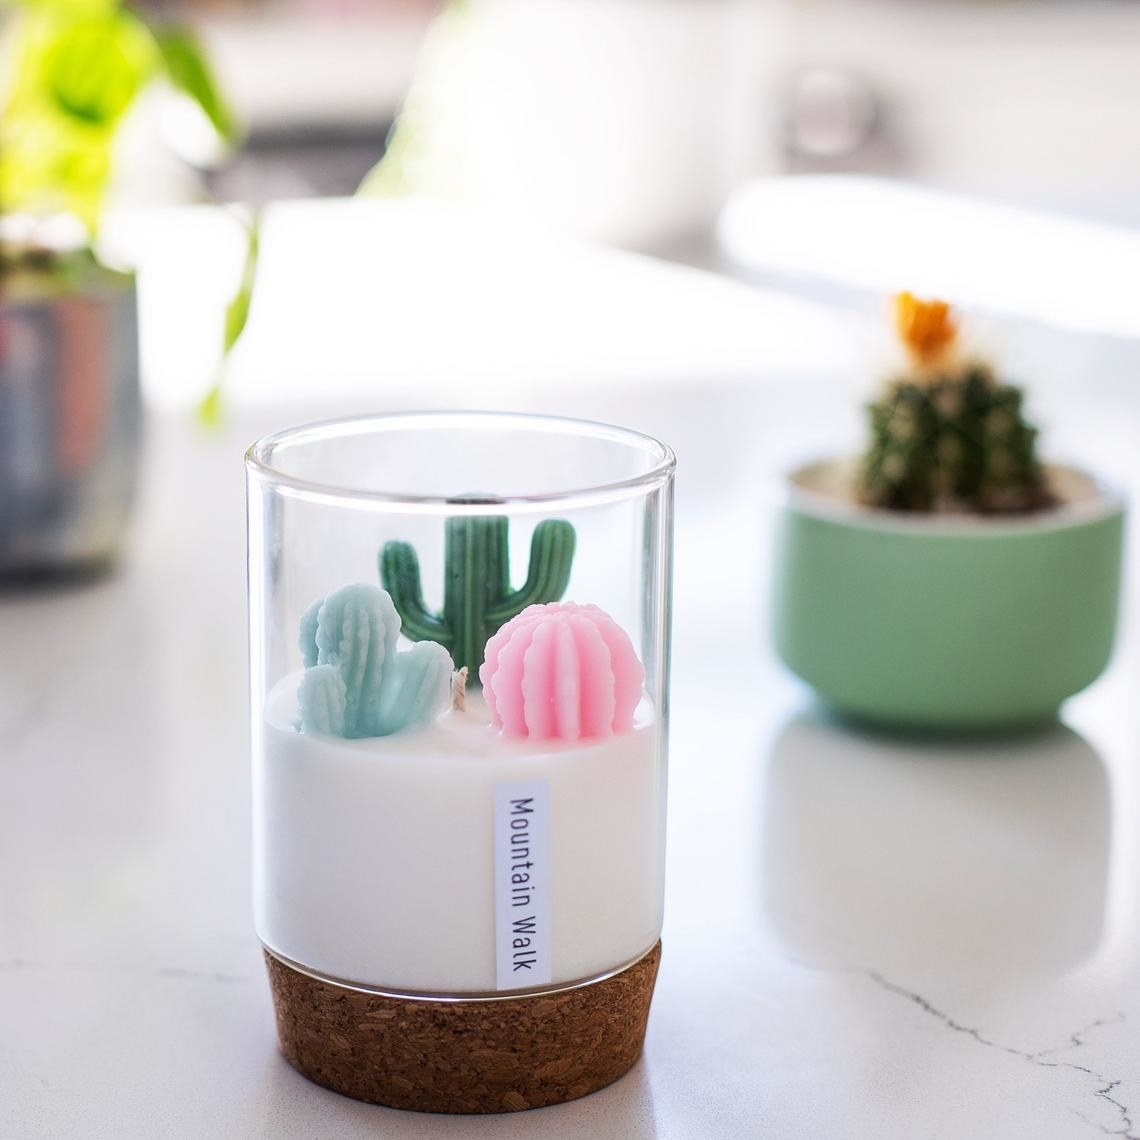 A terrarium candle on a table in front of a potted cactus